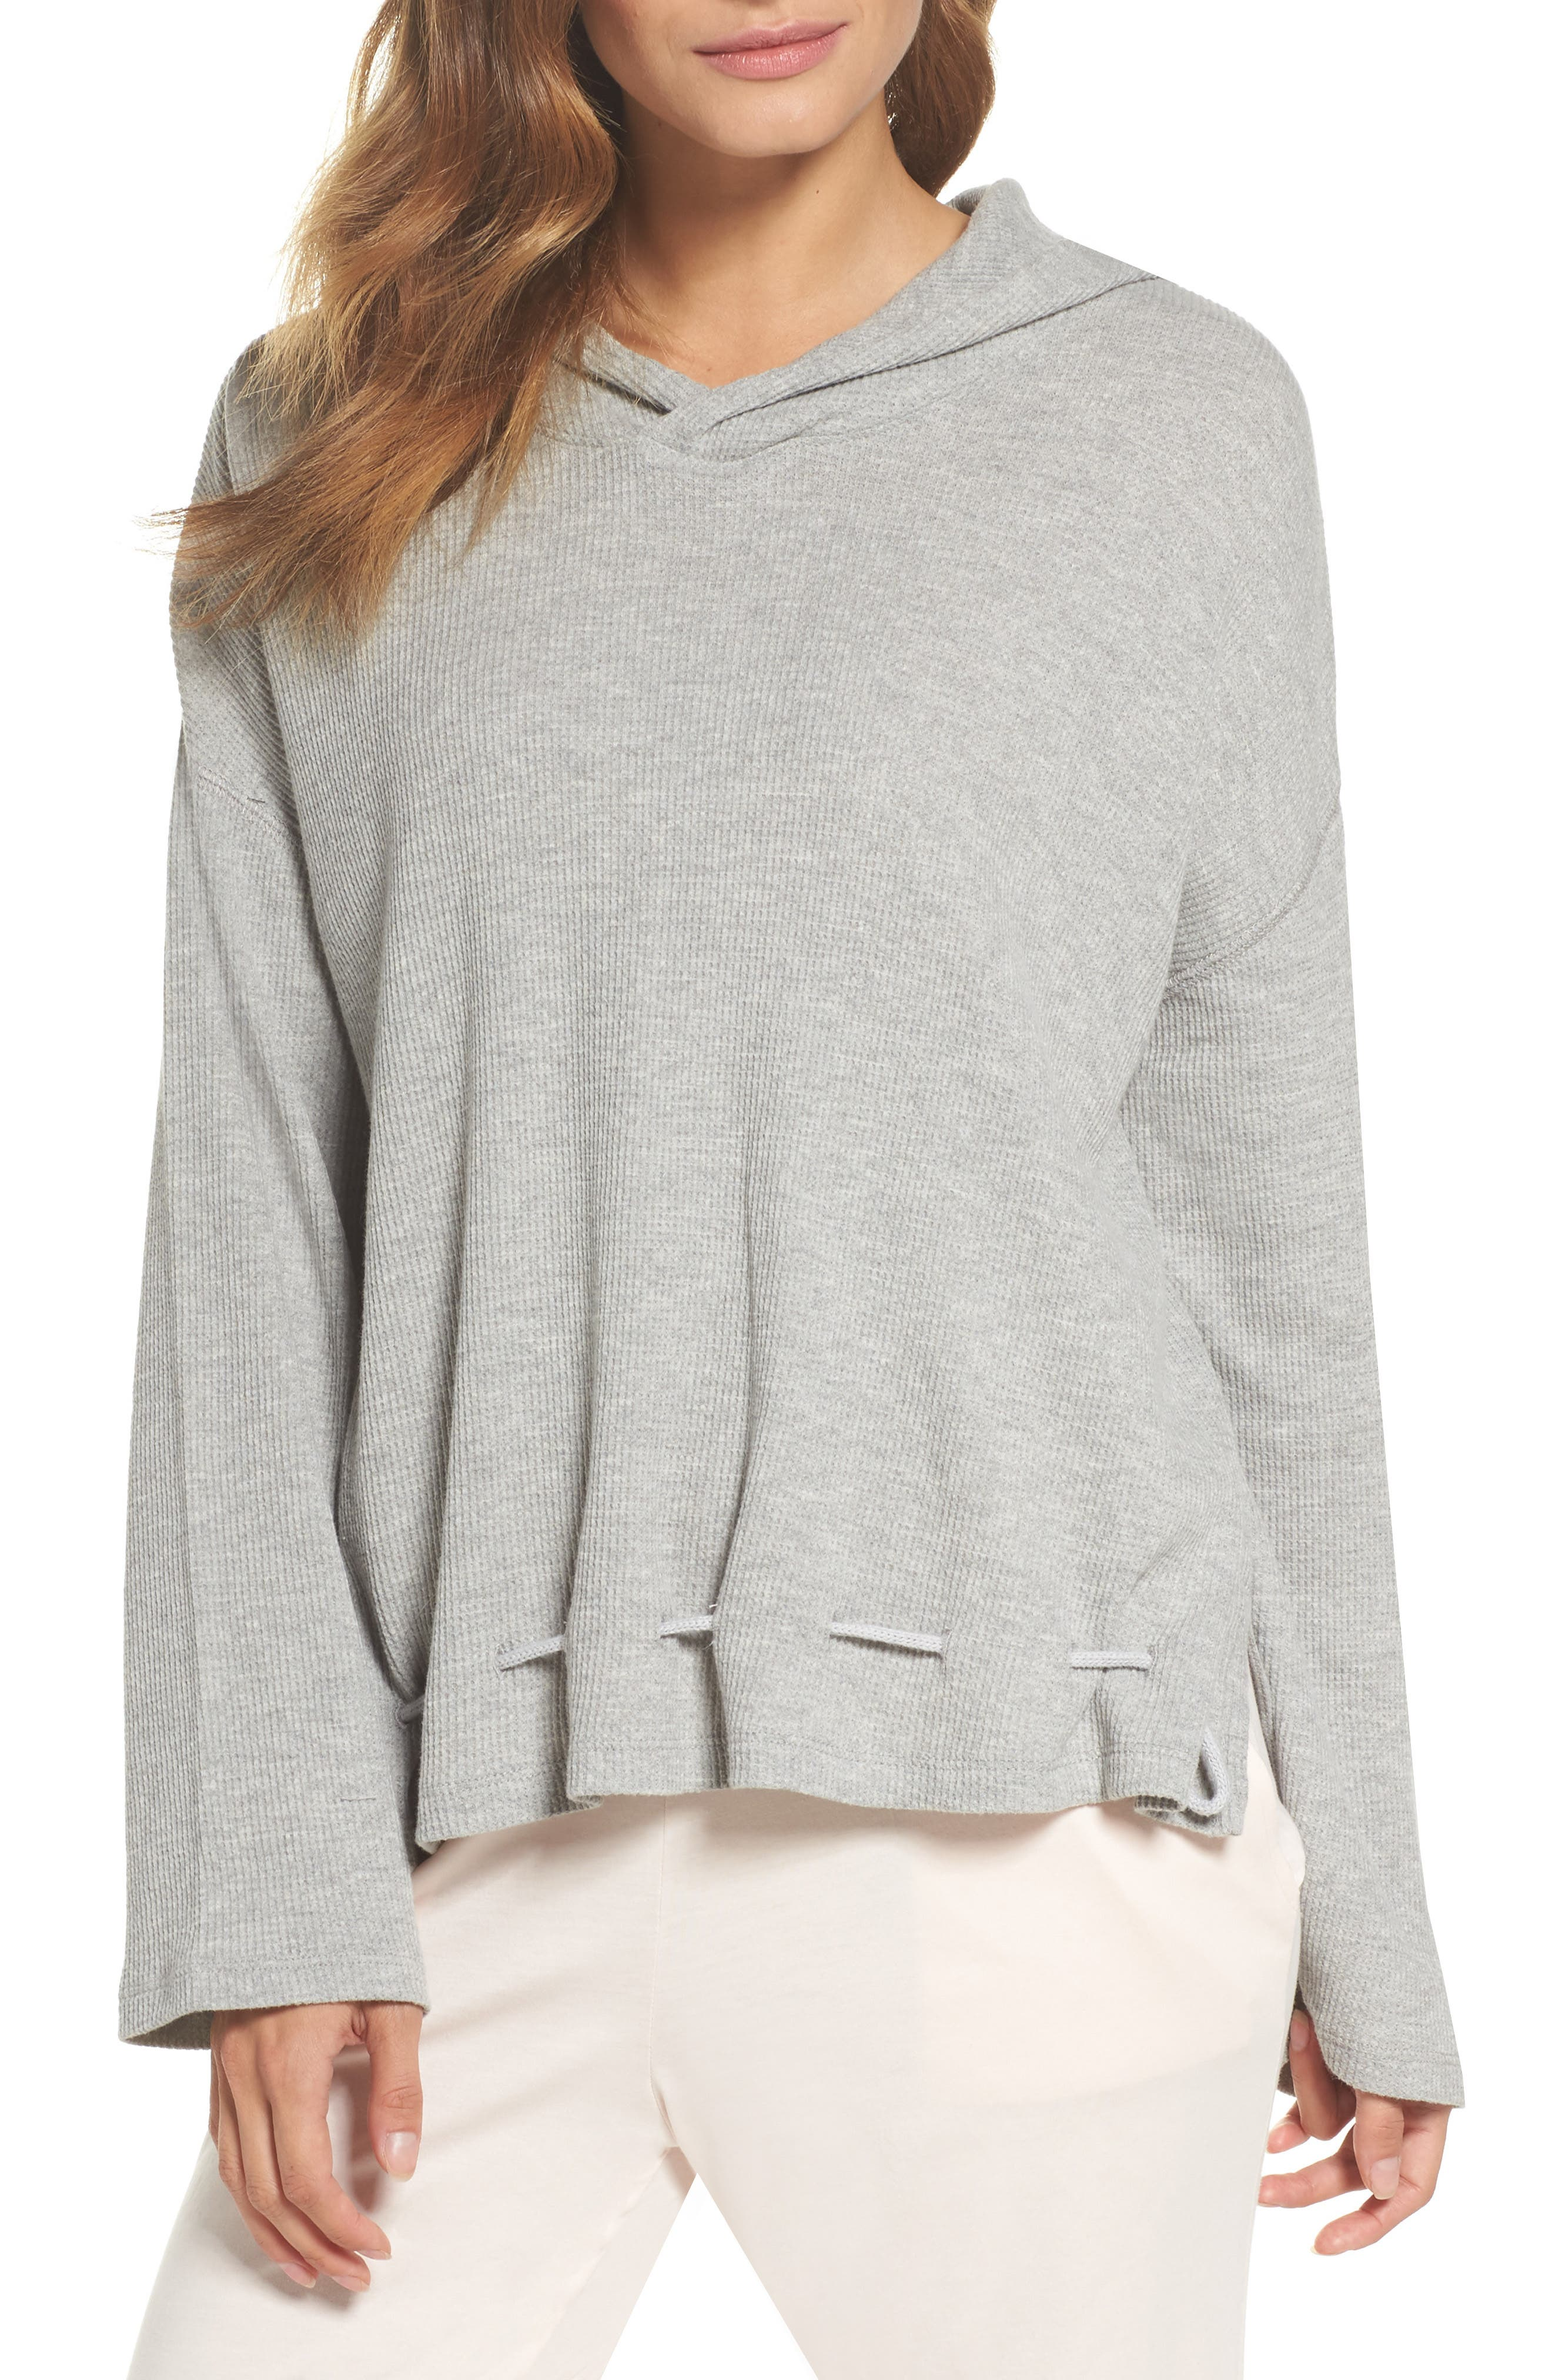 Thermal Hooded Top,                         Main,                         color, 020